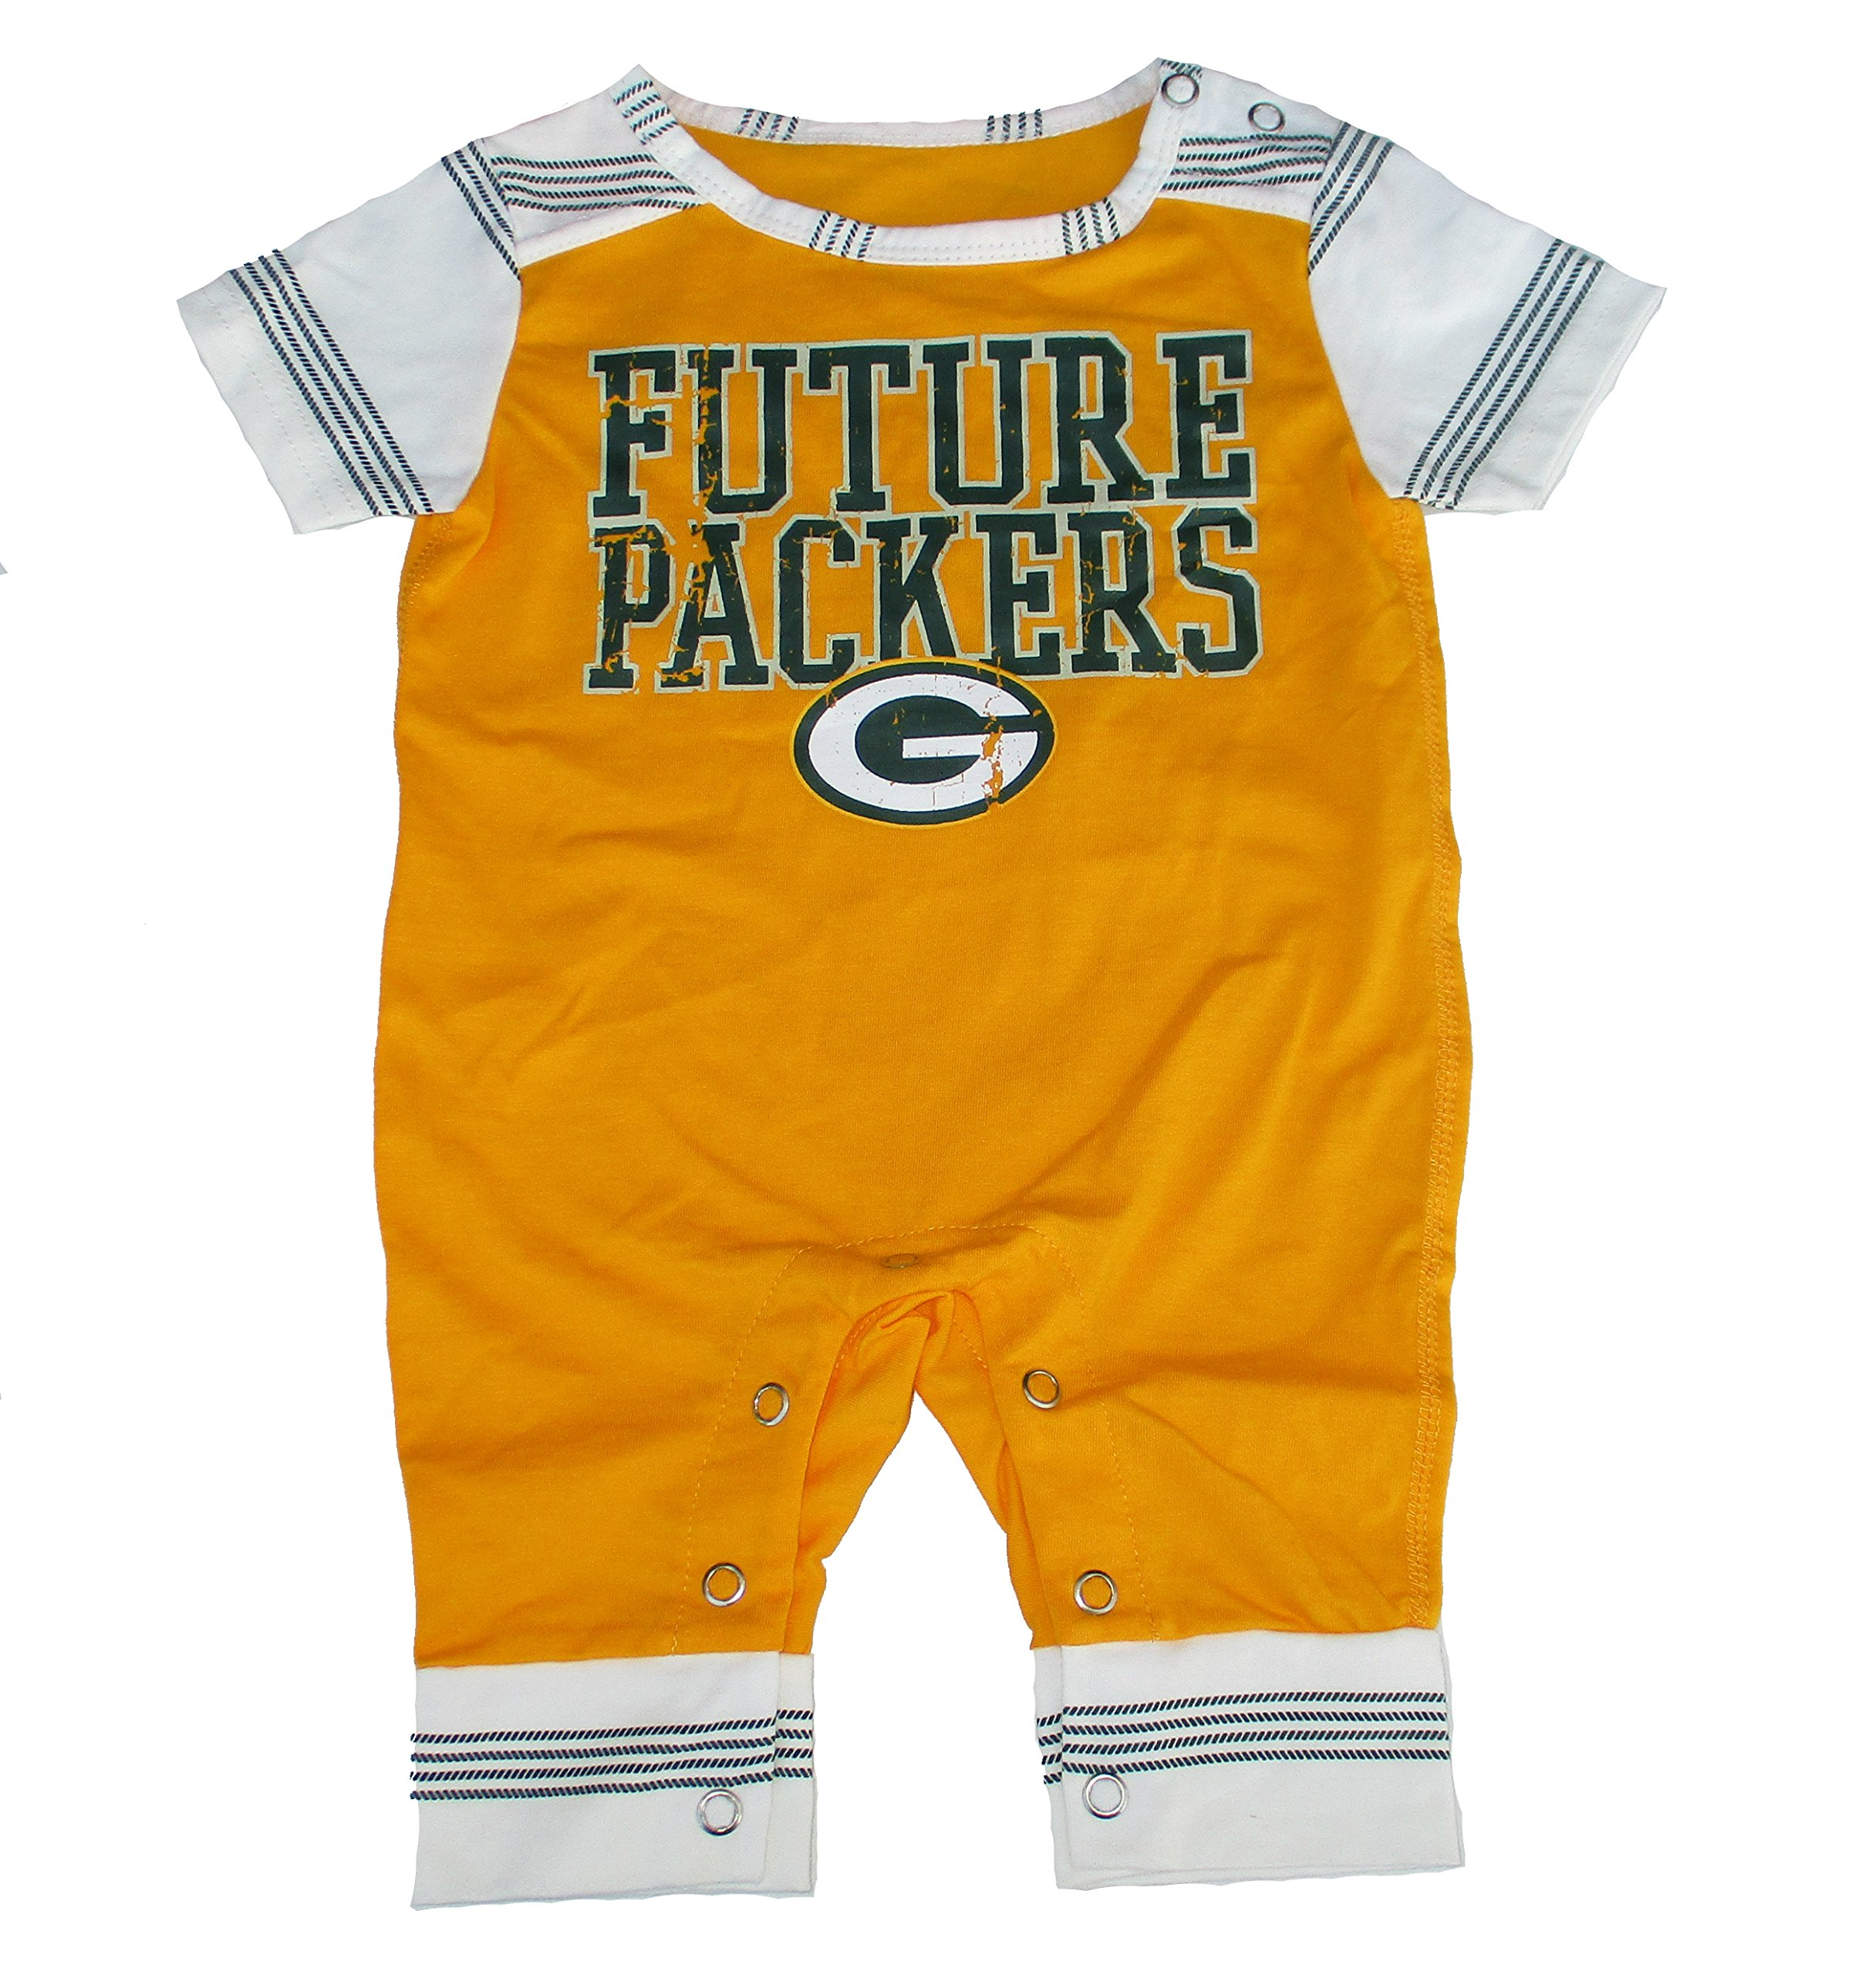 99041509 Green Bay Packers FUTURE PACKERS Romper Infant Size 0-3 Months ...